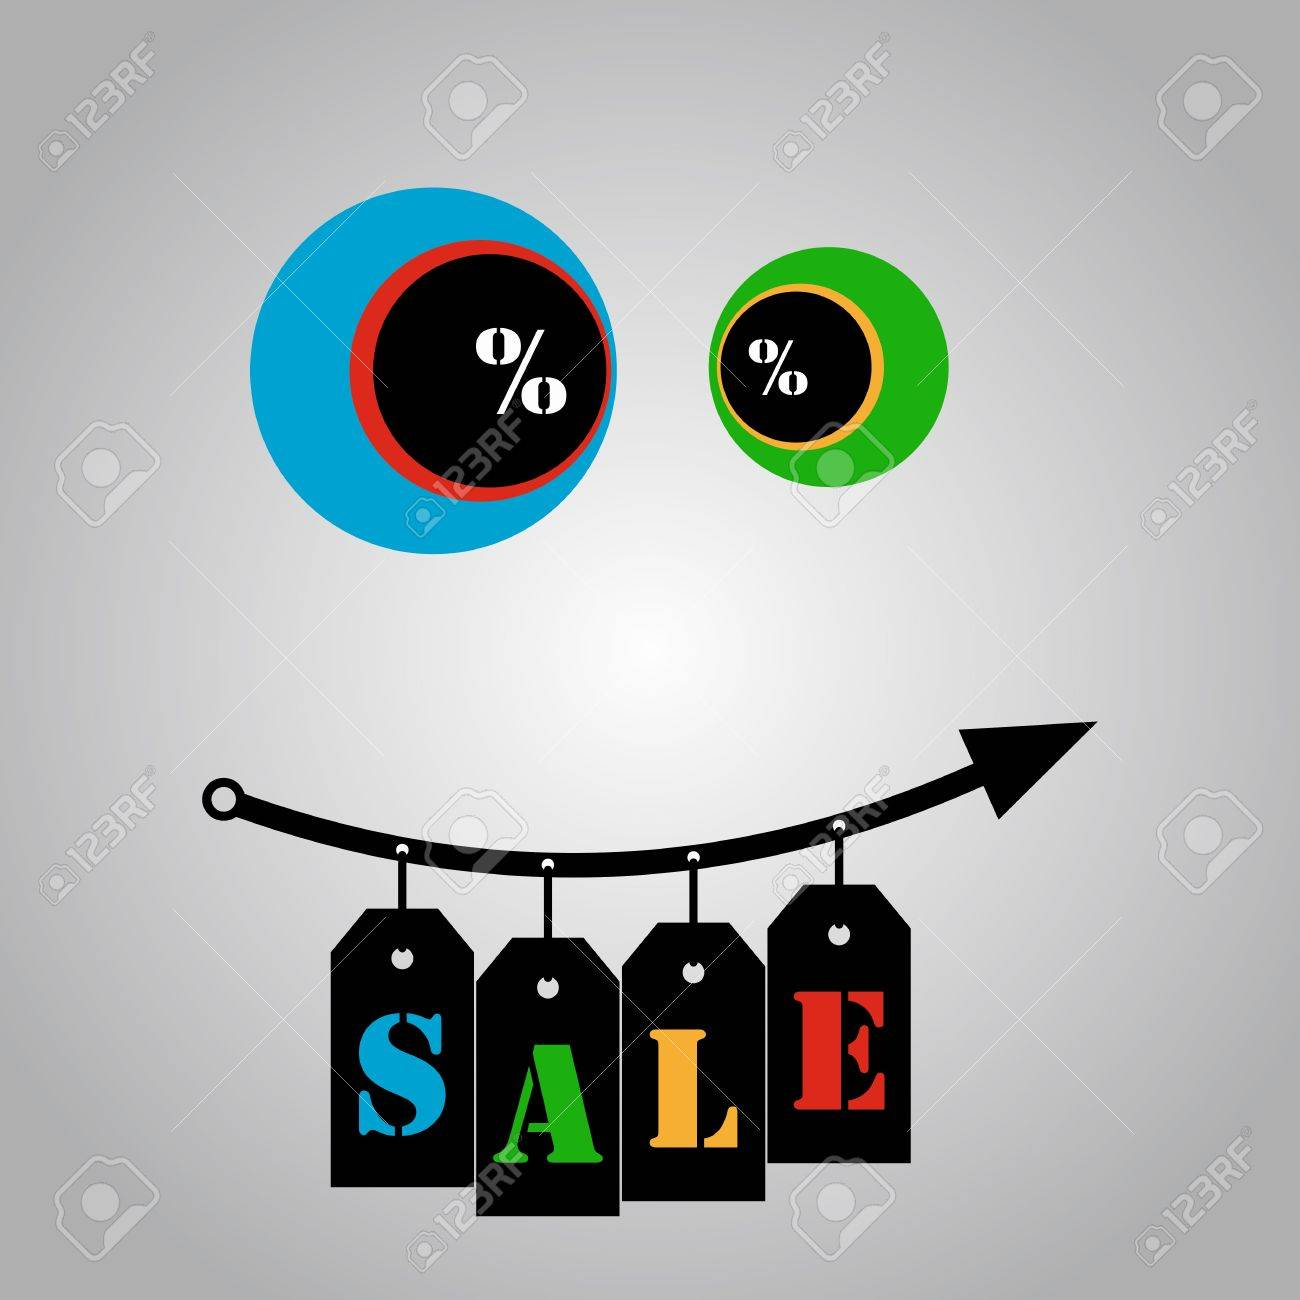 Happy growth sales - hanging ribbons Stock Vector - 16399308